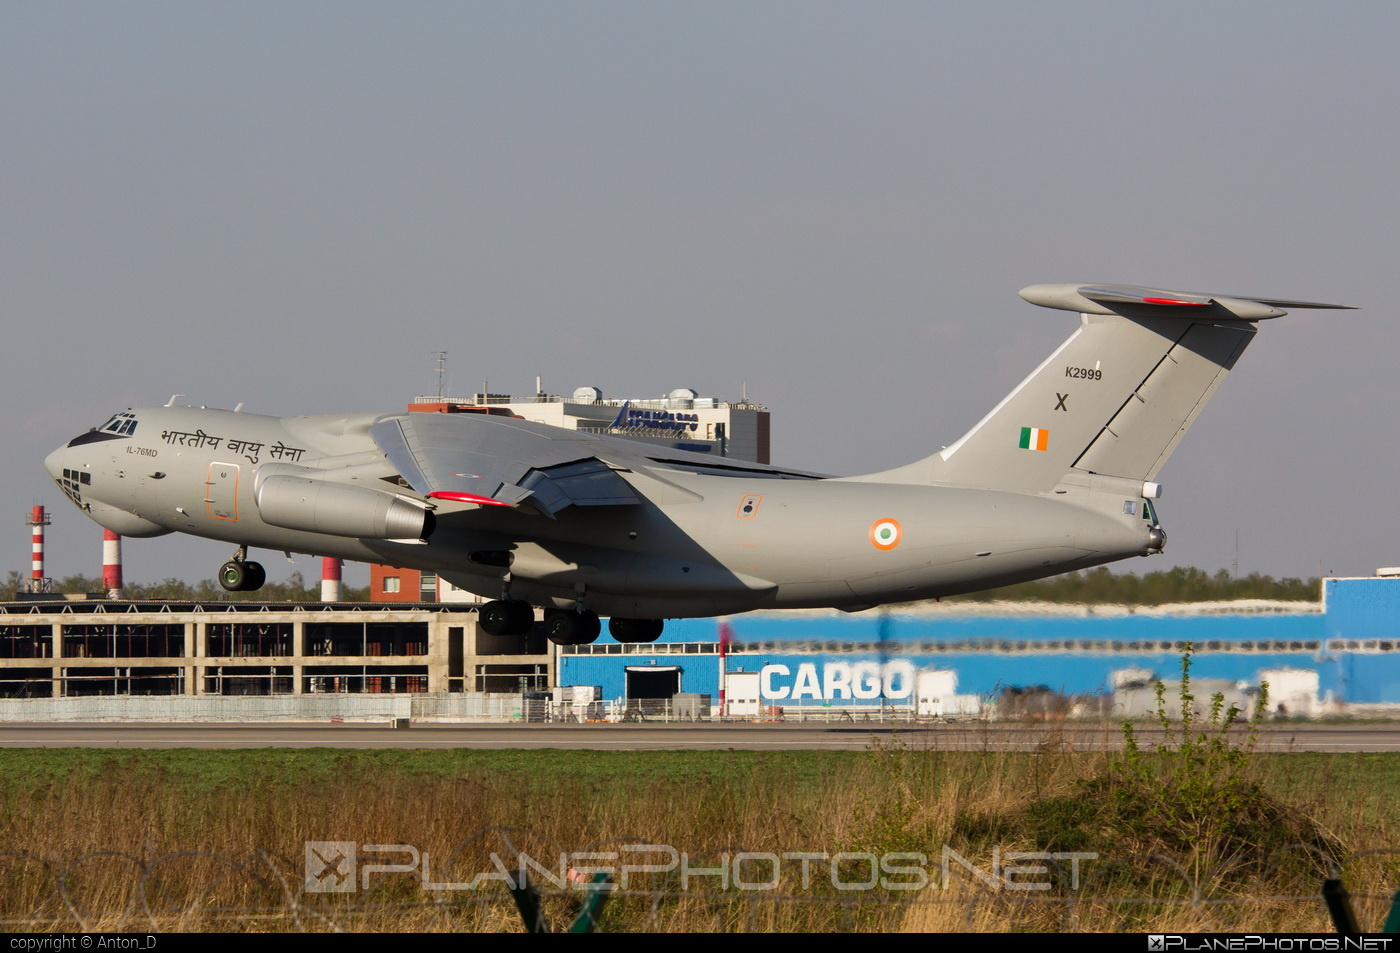 Ilyushin Il-76MD - K2999 operated by Bharatiya Vāyu Senā (Indian Air Force) #il76 #il76md #ilyushin